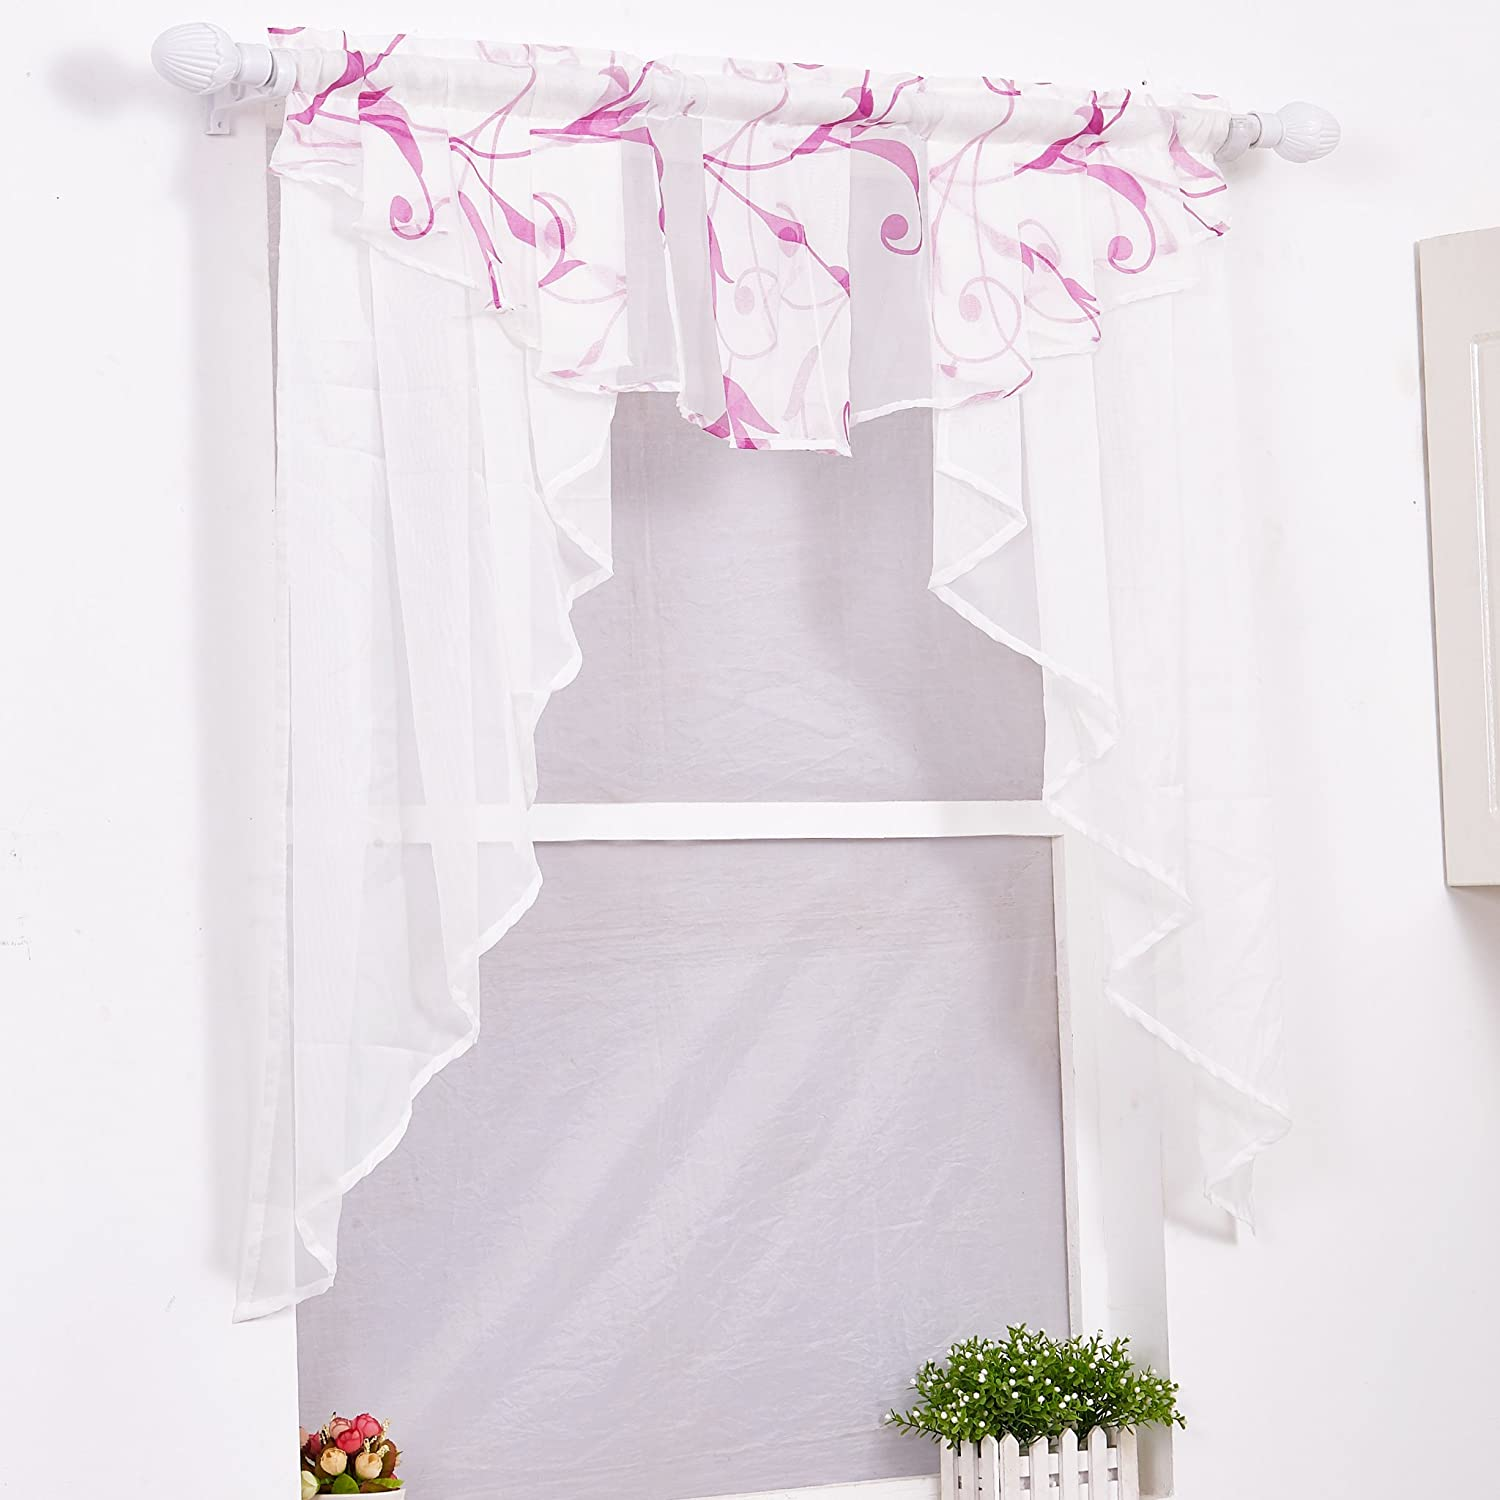 ISINO 1 Piece Rod Pocket Sheer Voile Swag Roman Curtain Window Valance for Kitchen Balcony W 31